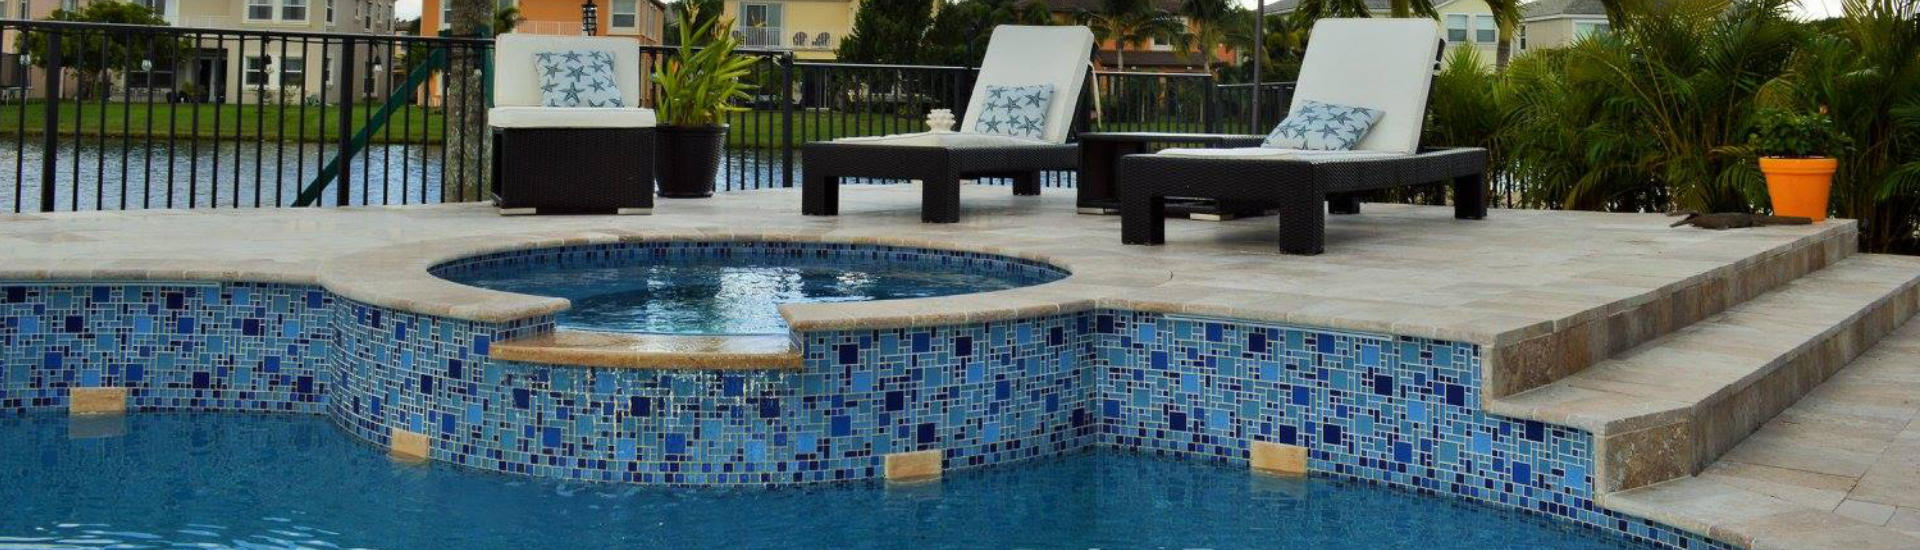 backyard swimming pool with decotartive tiles and sun loungers on a deck